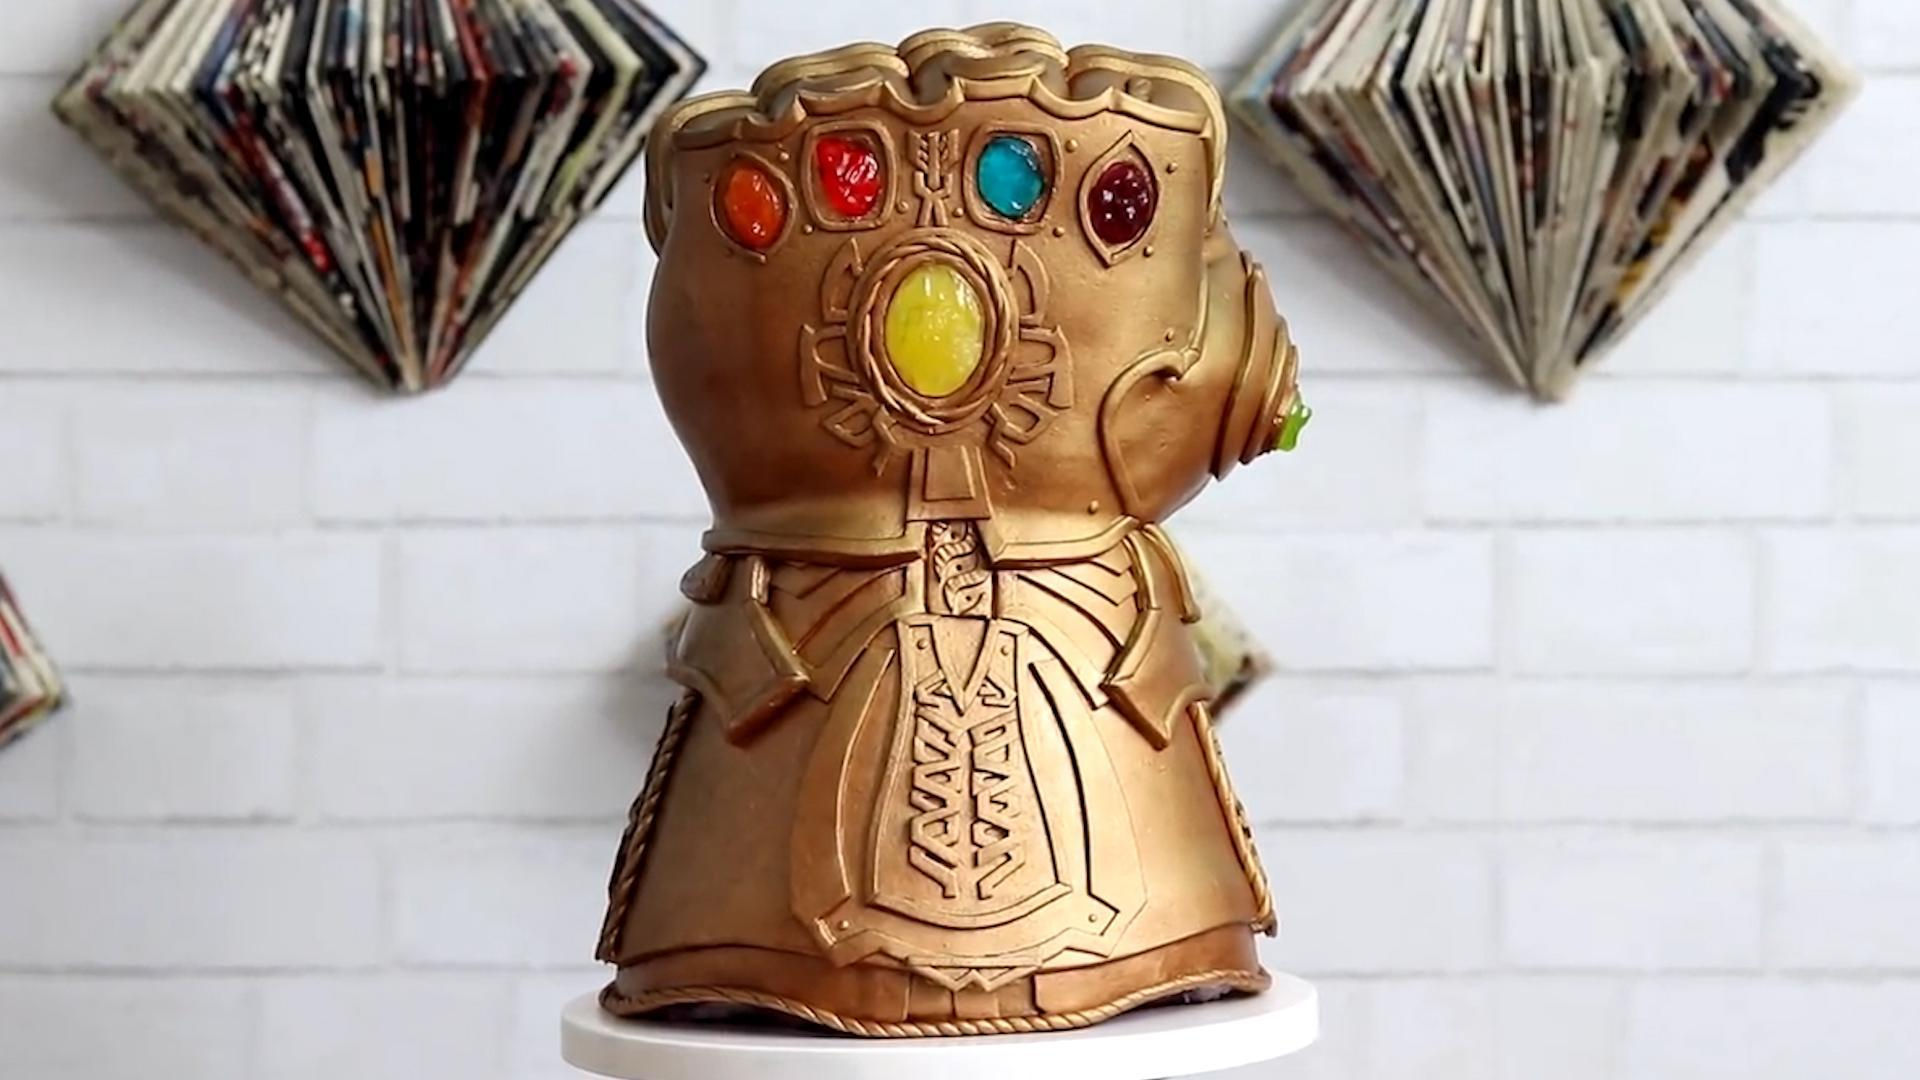 Behold the Avengers Infinity Gauntlet Cake